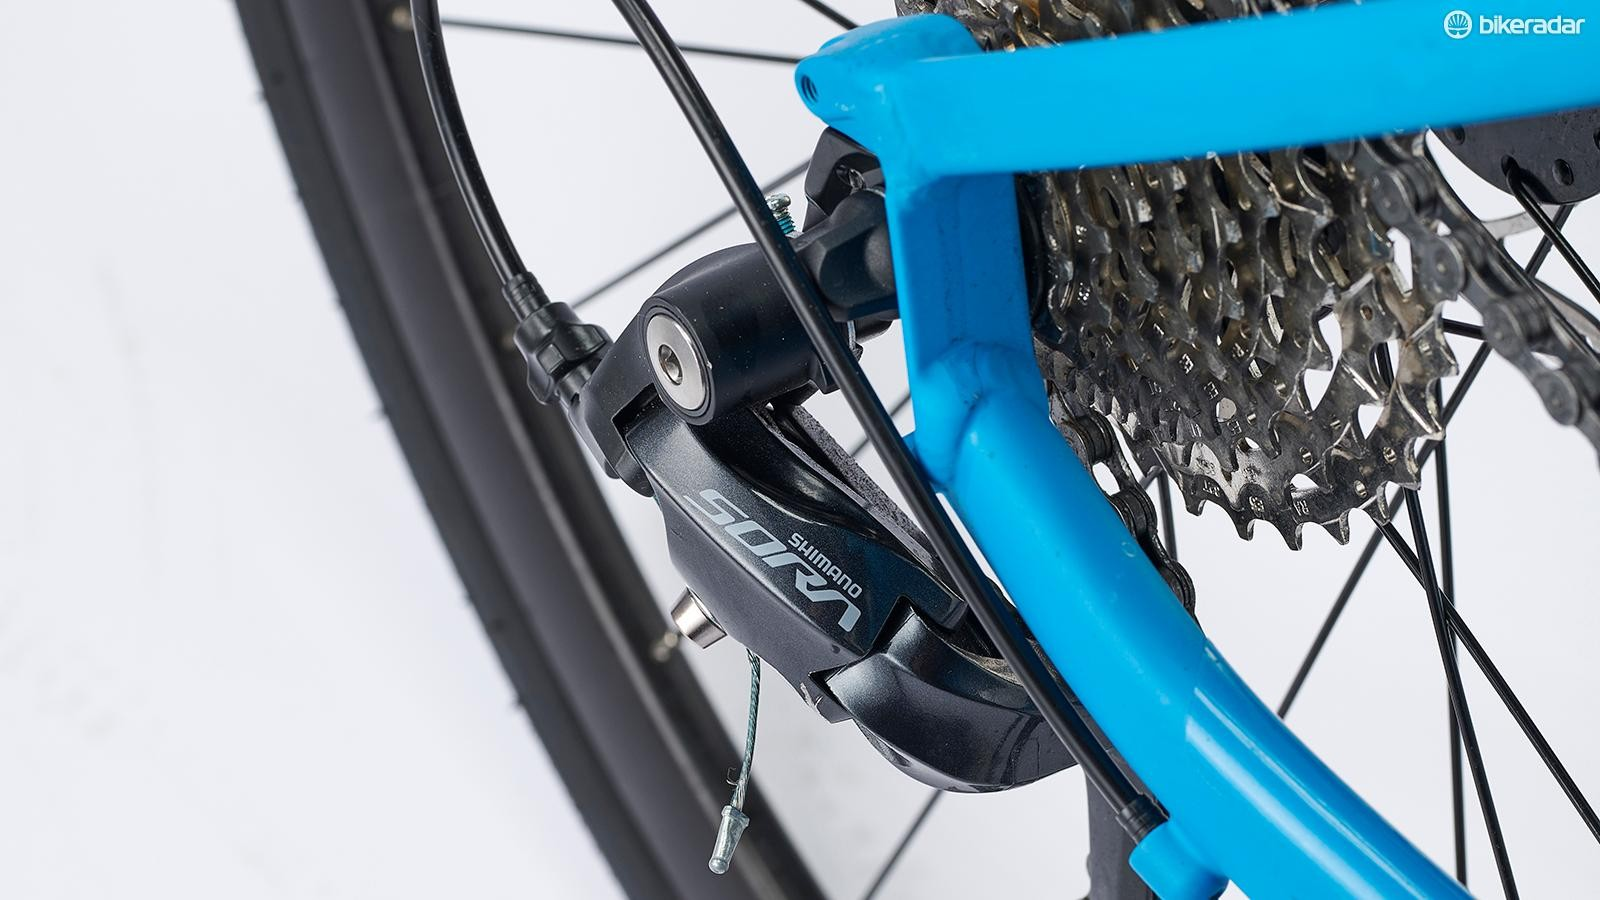 A Microshift cassette and Promax mechanical disc calipers are fitted